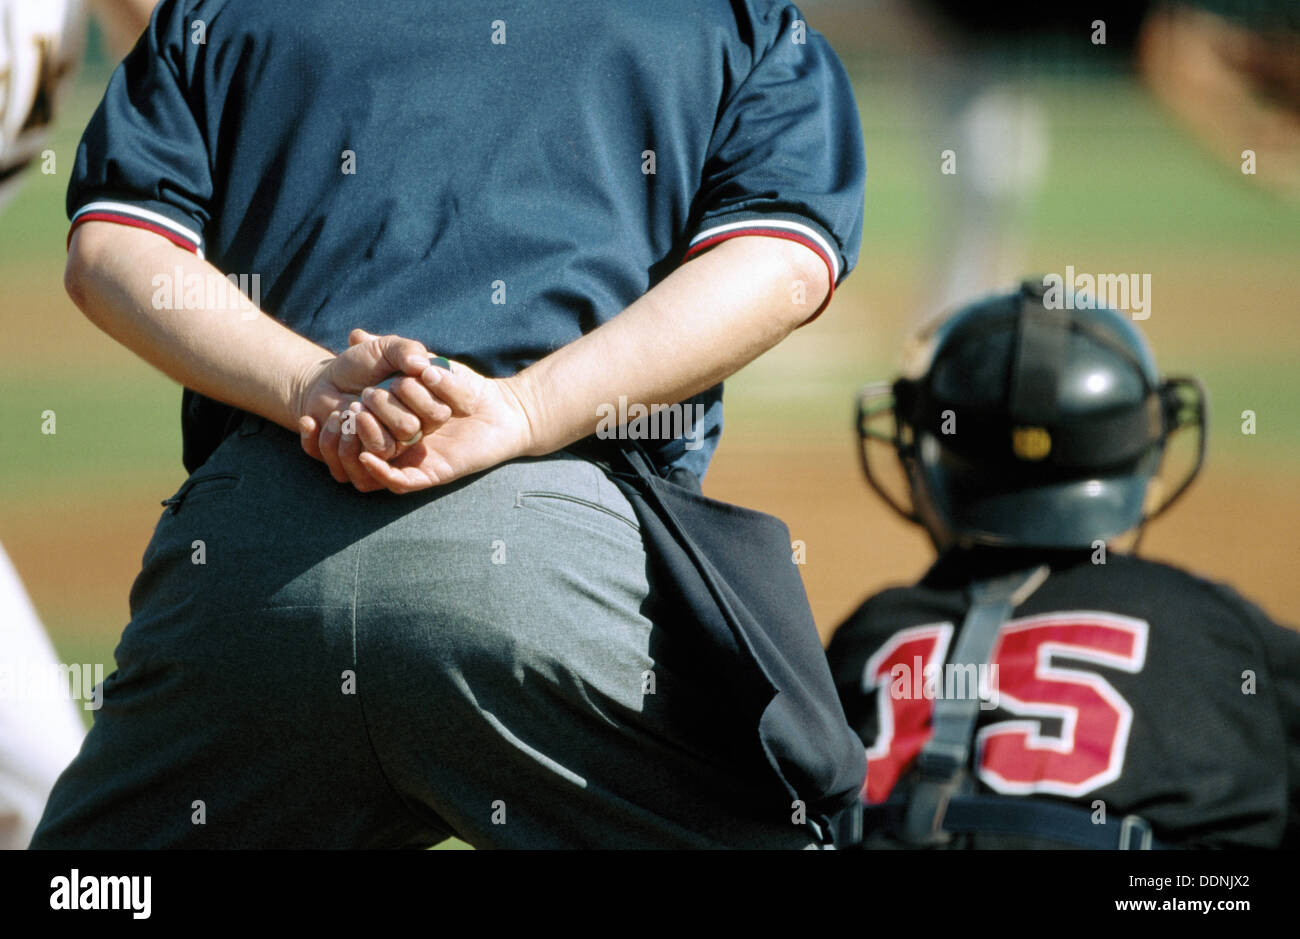 Baseball umpire and catcher & Baseball umpire and catcher Stock Photo: 60097466 - Alamy